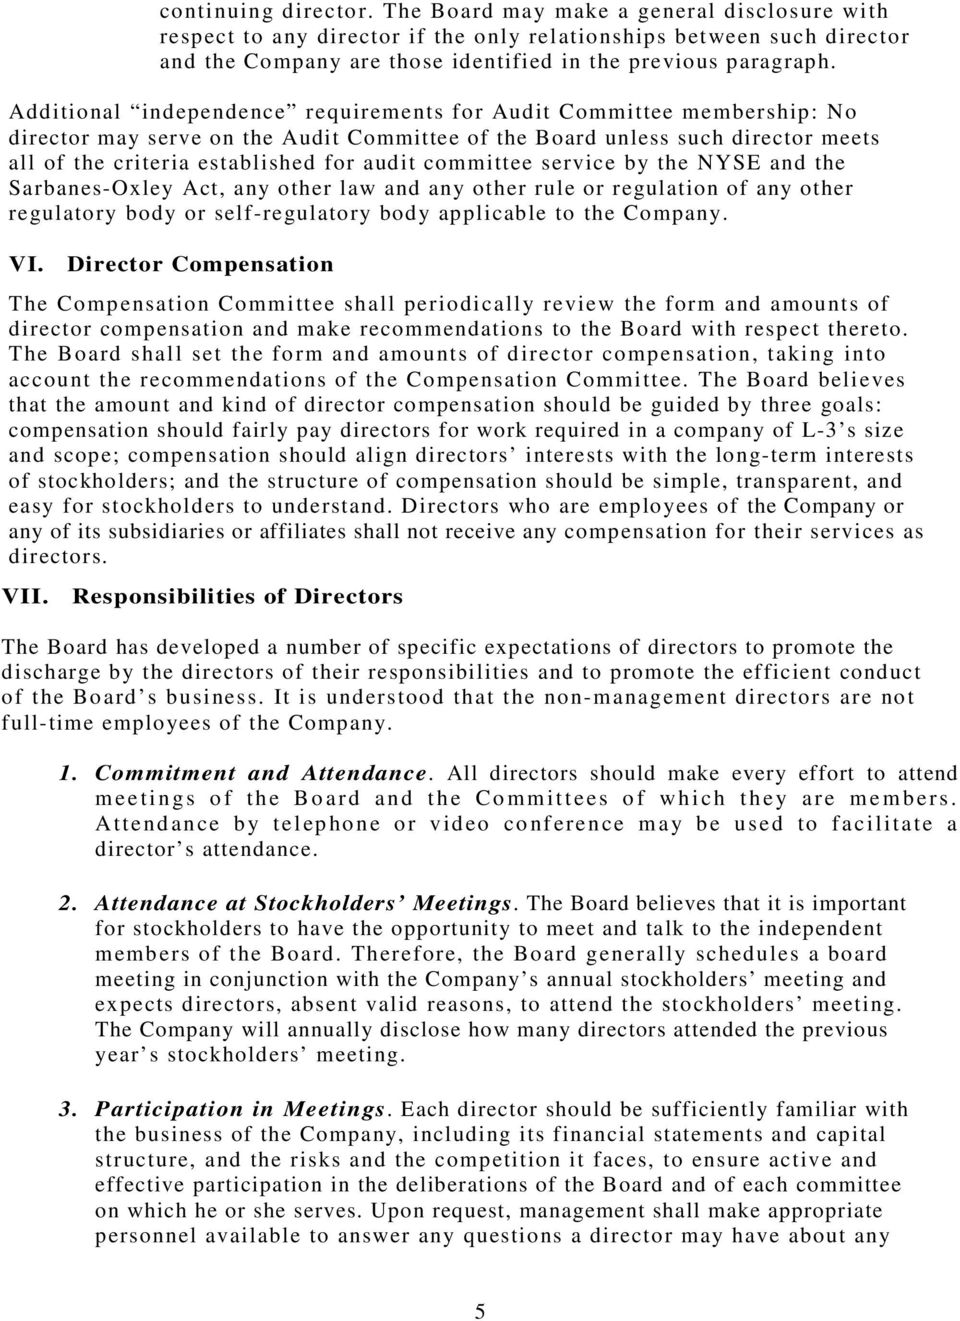 Additional independence requirements for Audit Committee membership: No director may serve on the Audit Committee of the Board unless such director meets all of the criteria established for audit